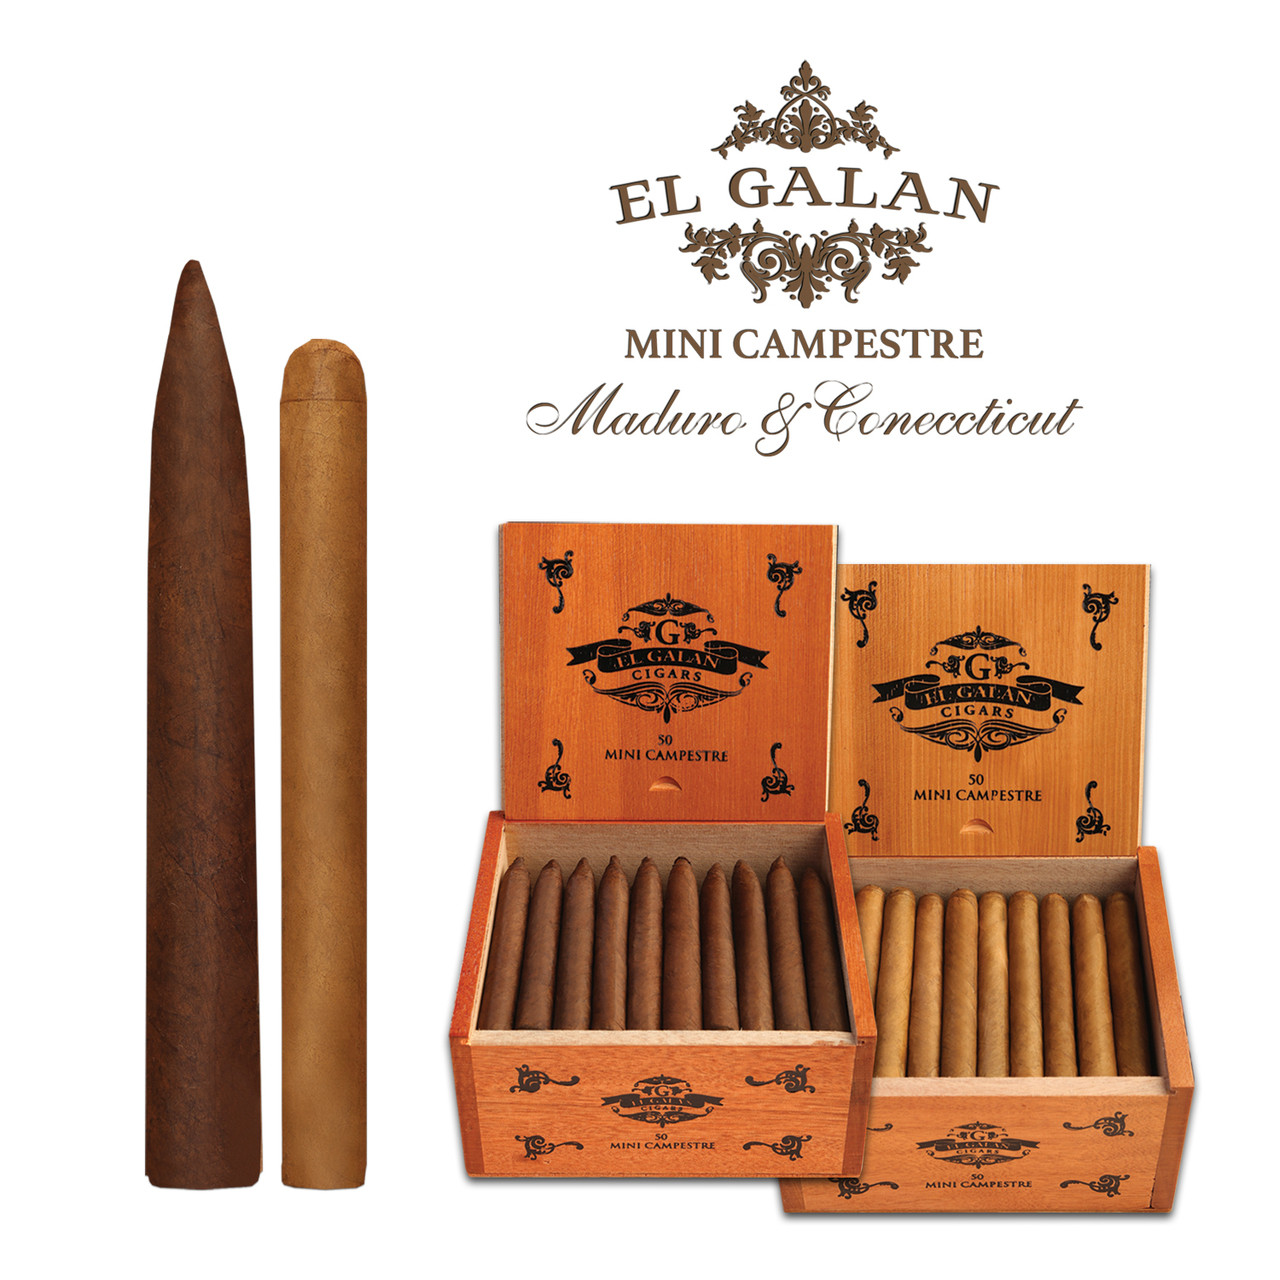 Shop Now El Galan Mini Campestre Torito Cigars - Natural Box of 50 --> Singles at $1.36, 5 Packs at $6.50, Boxes at $61.95